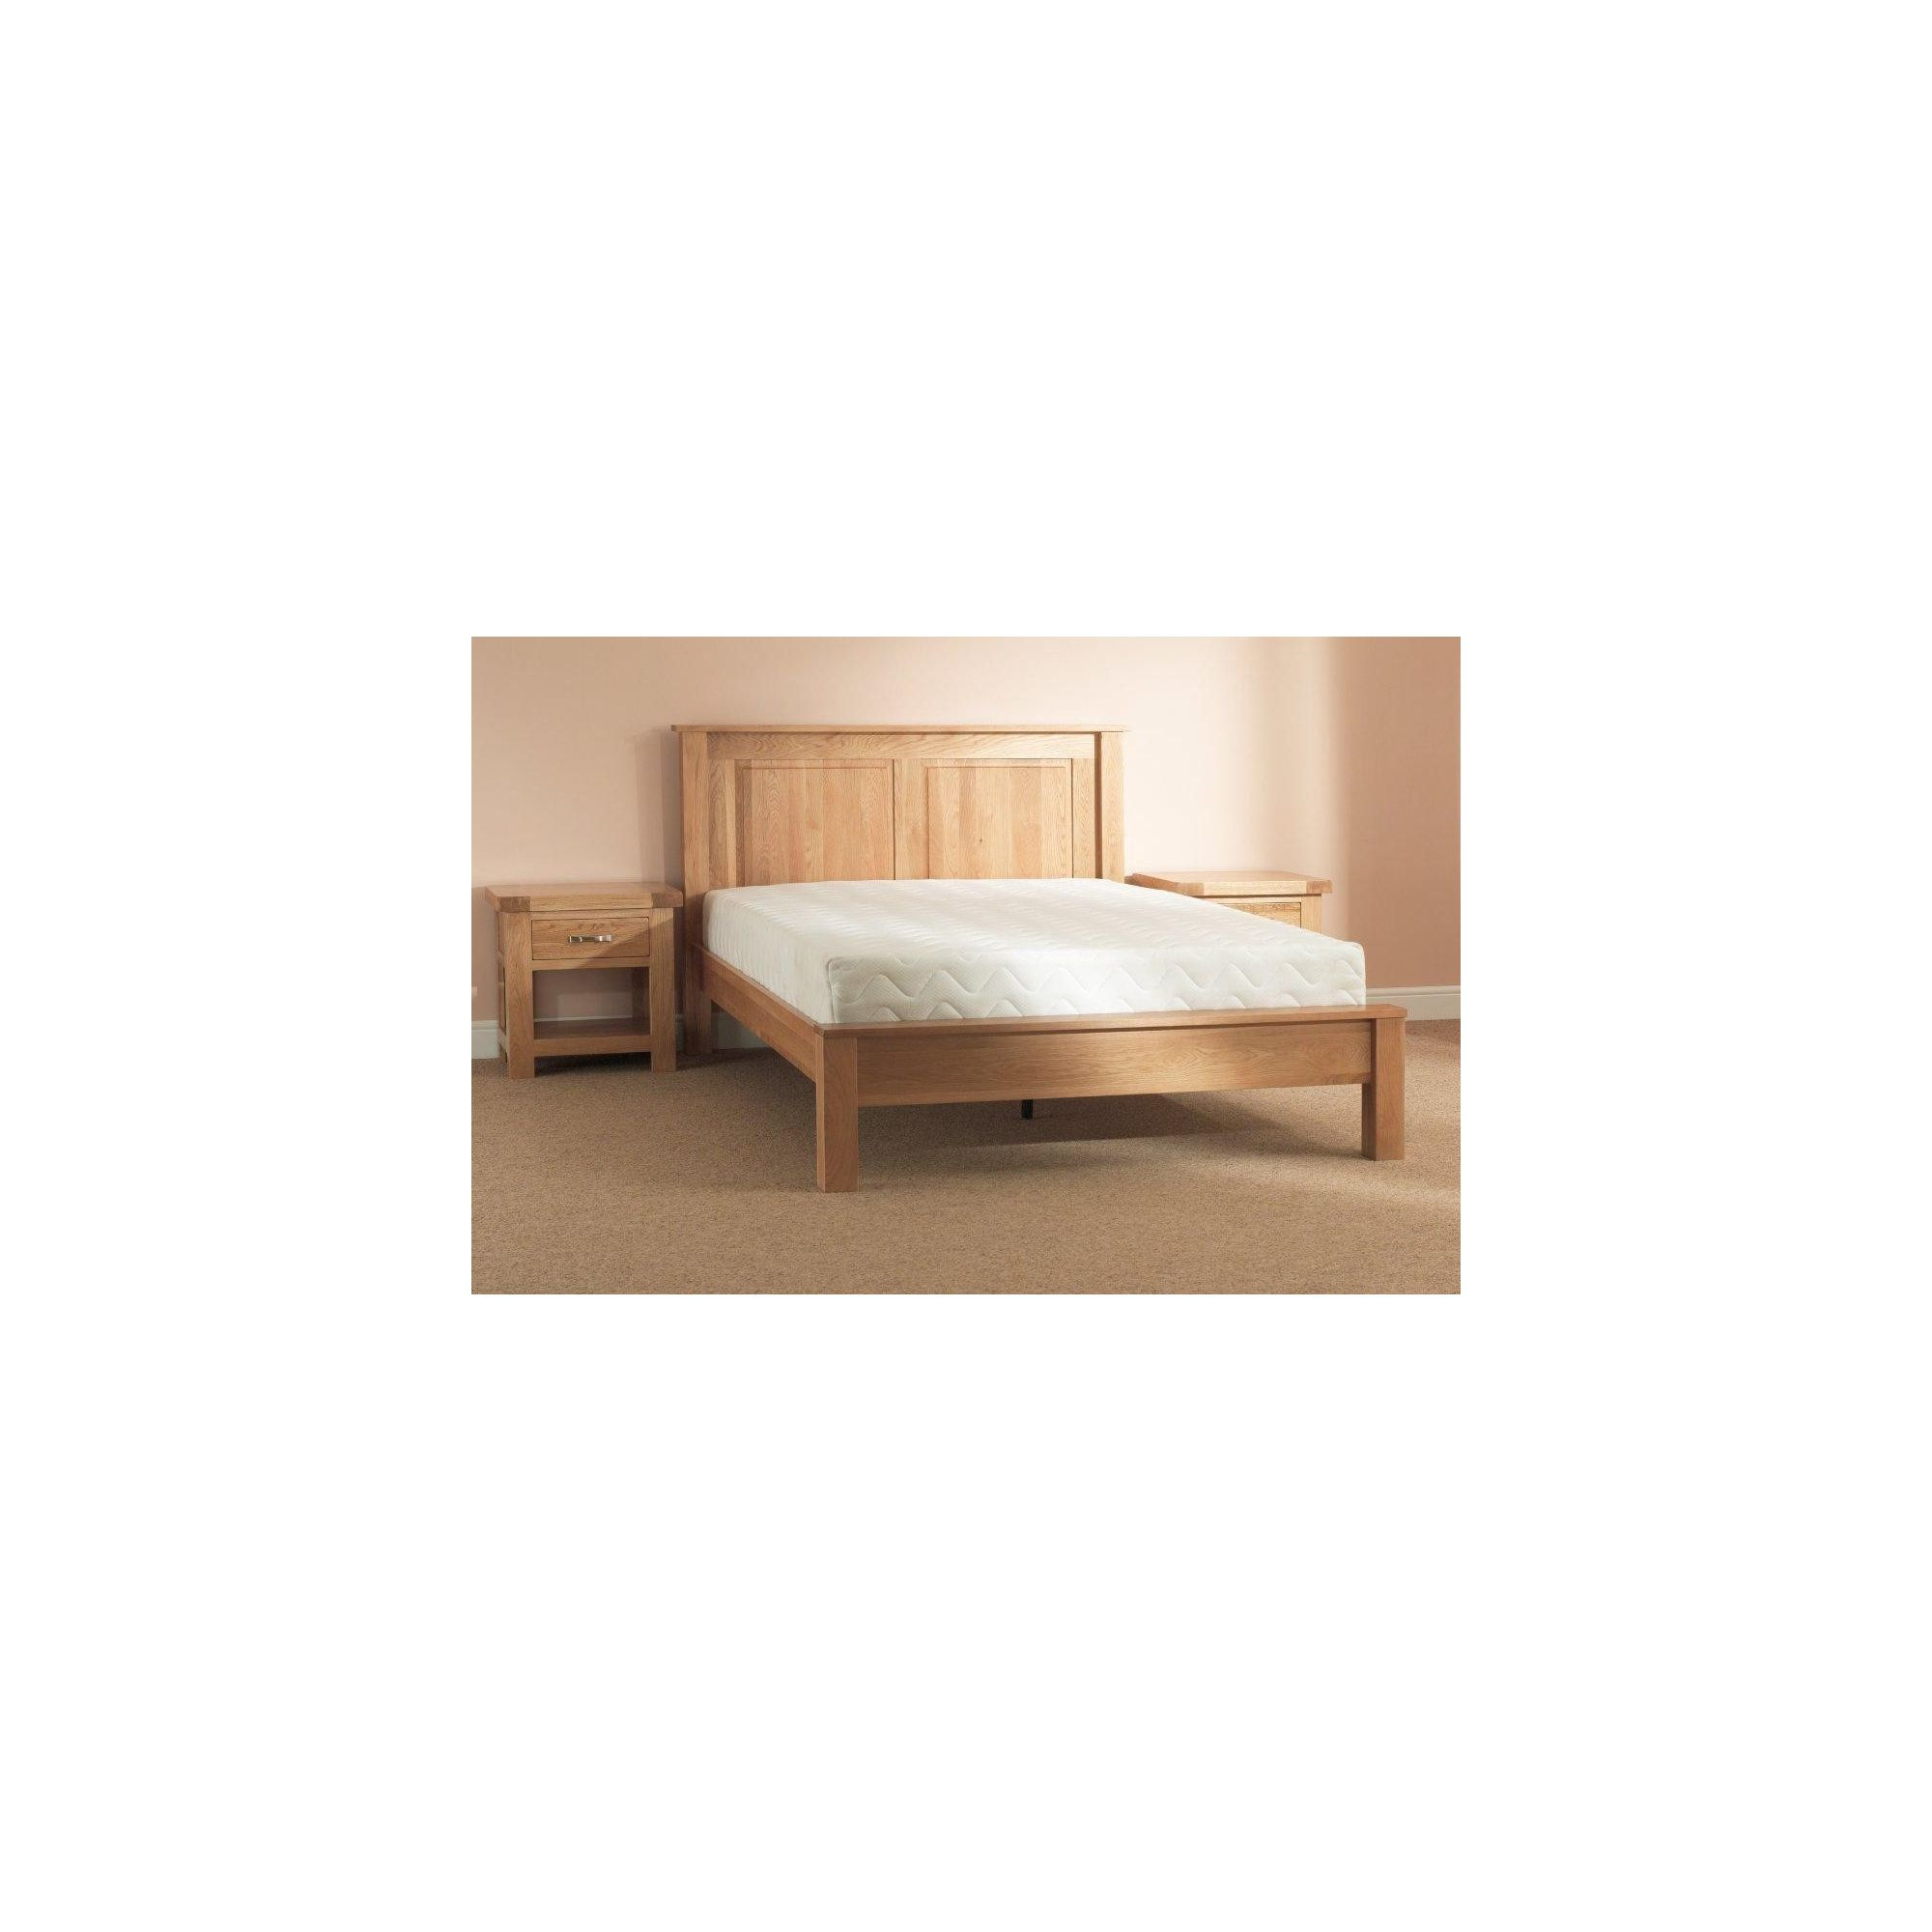 Sleepy Valley Oakham Bed - No Drawers - King at Tesco Direct